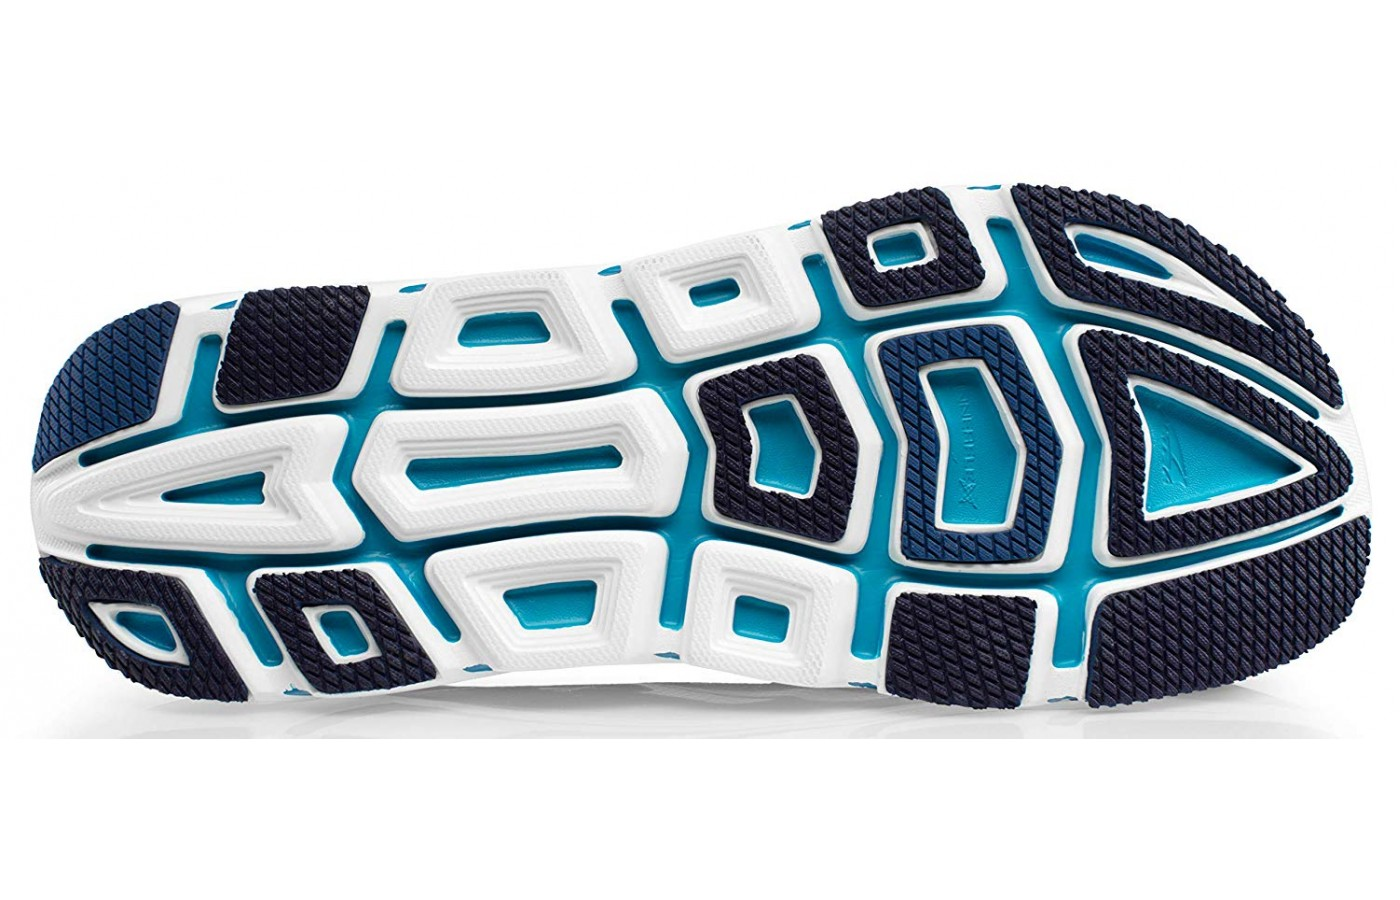 The outsole has rubber which supports the foot.